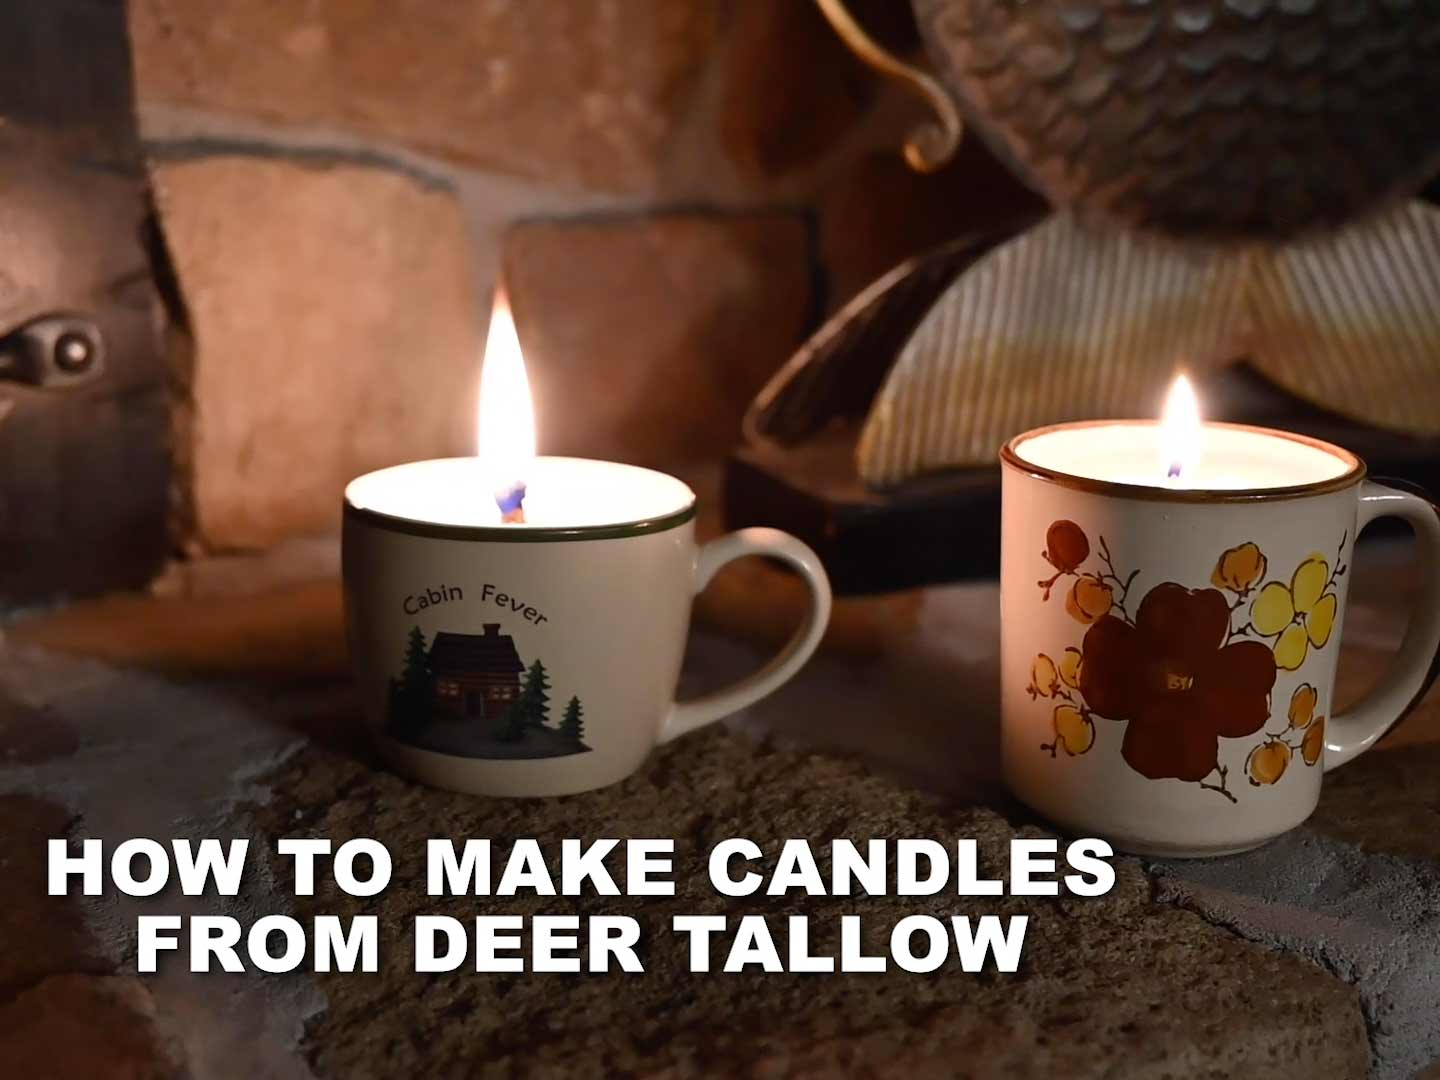 How to make candles from deer tallow.